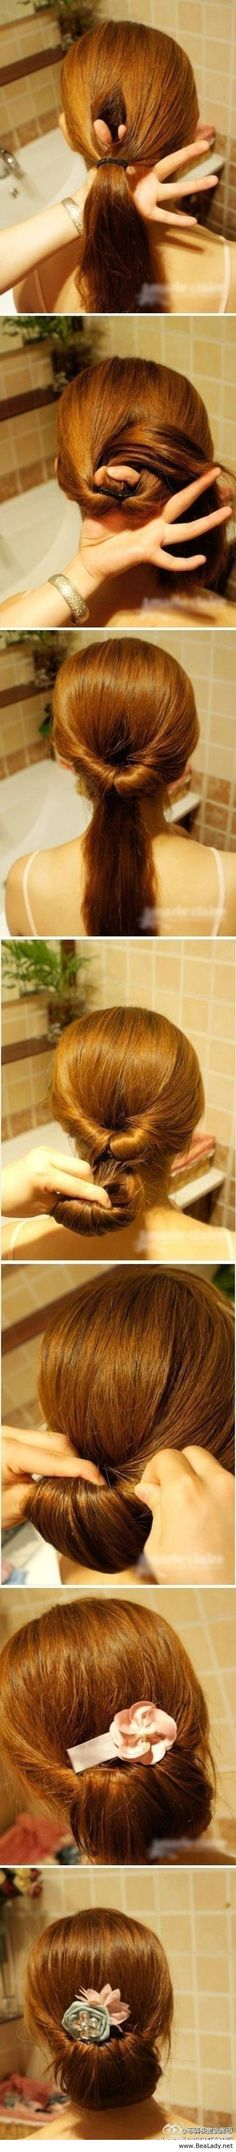 how-to-guide-to-hairstyles-27-pics_16.jpg (640×5836)